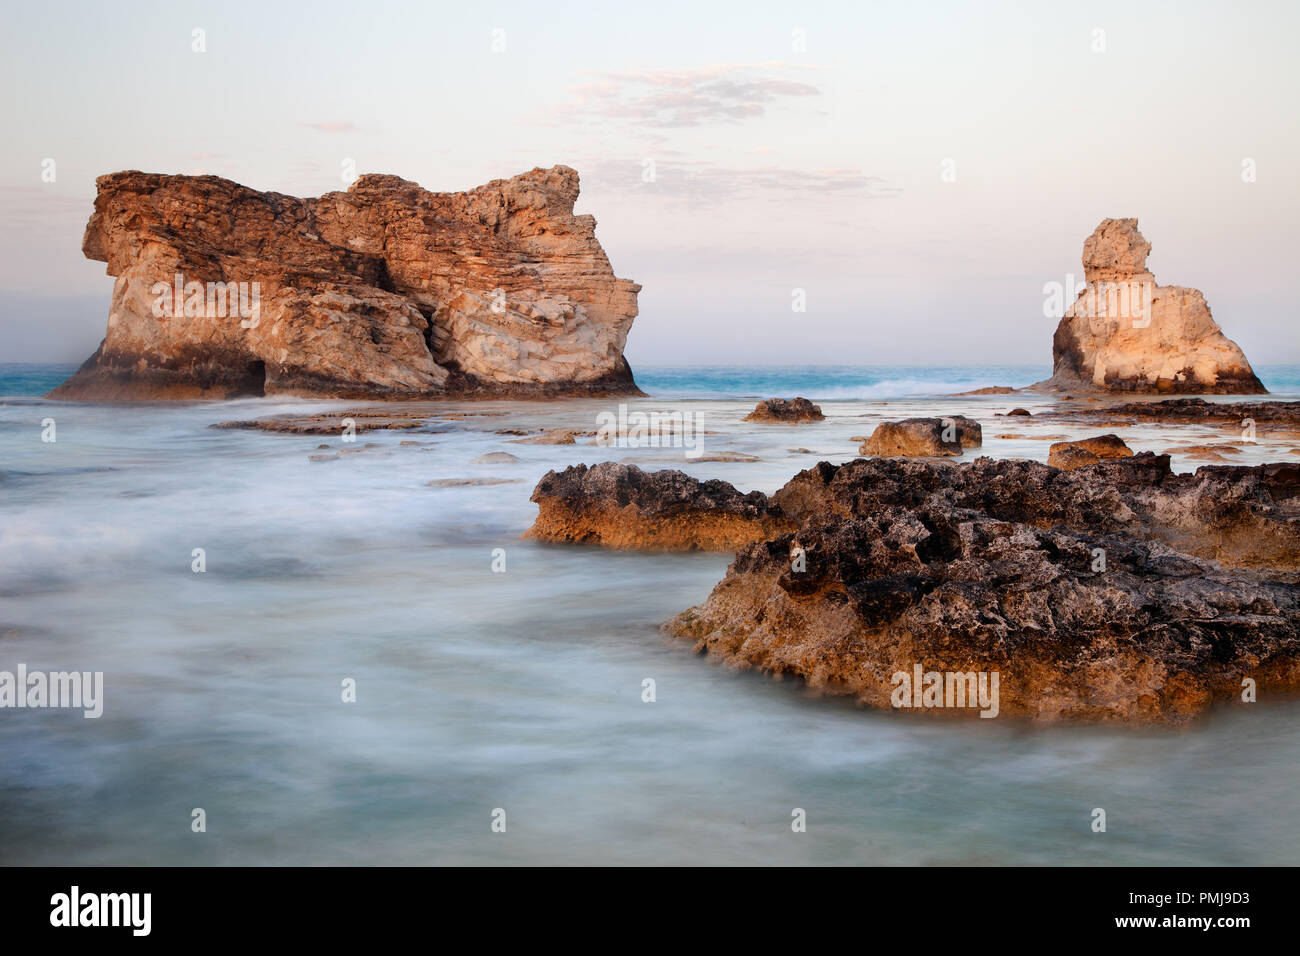 Nice view of sea landscape and Cleopatra's beach famous rocks near Marsa Matruh in Egypt - Stock Image